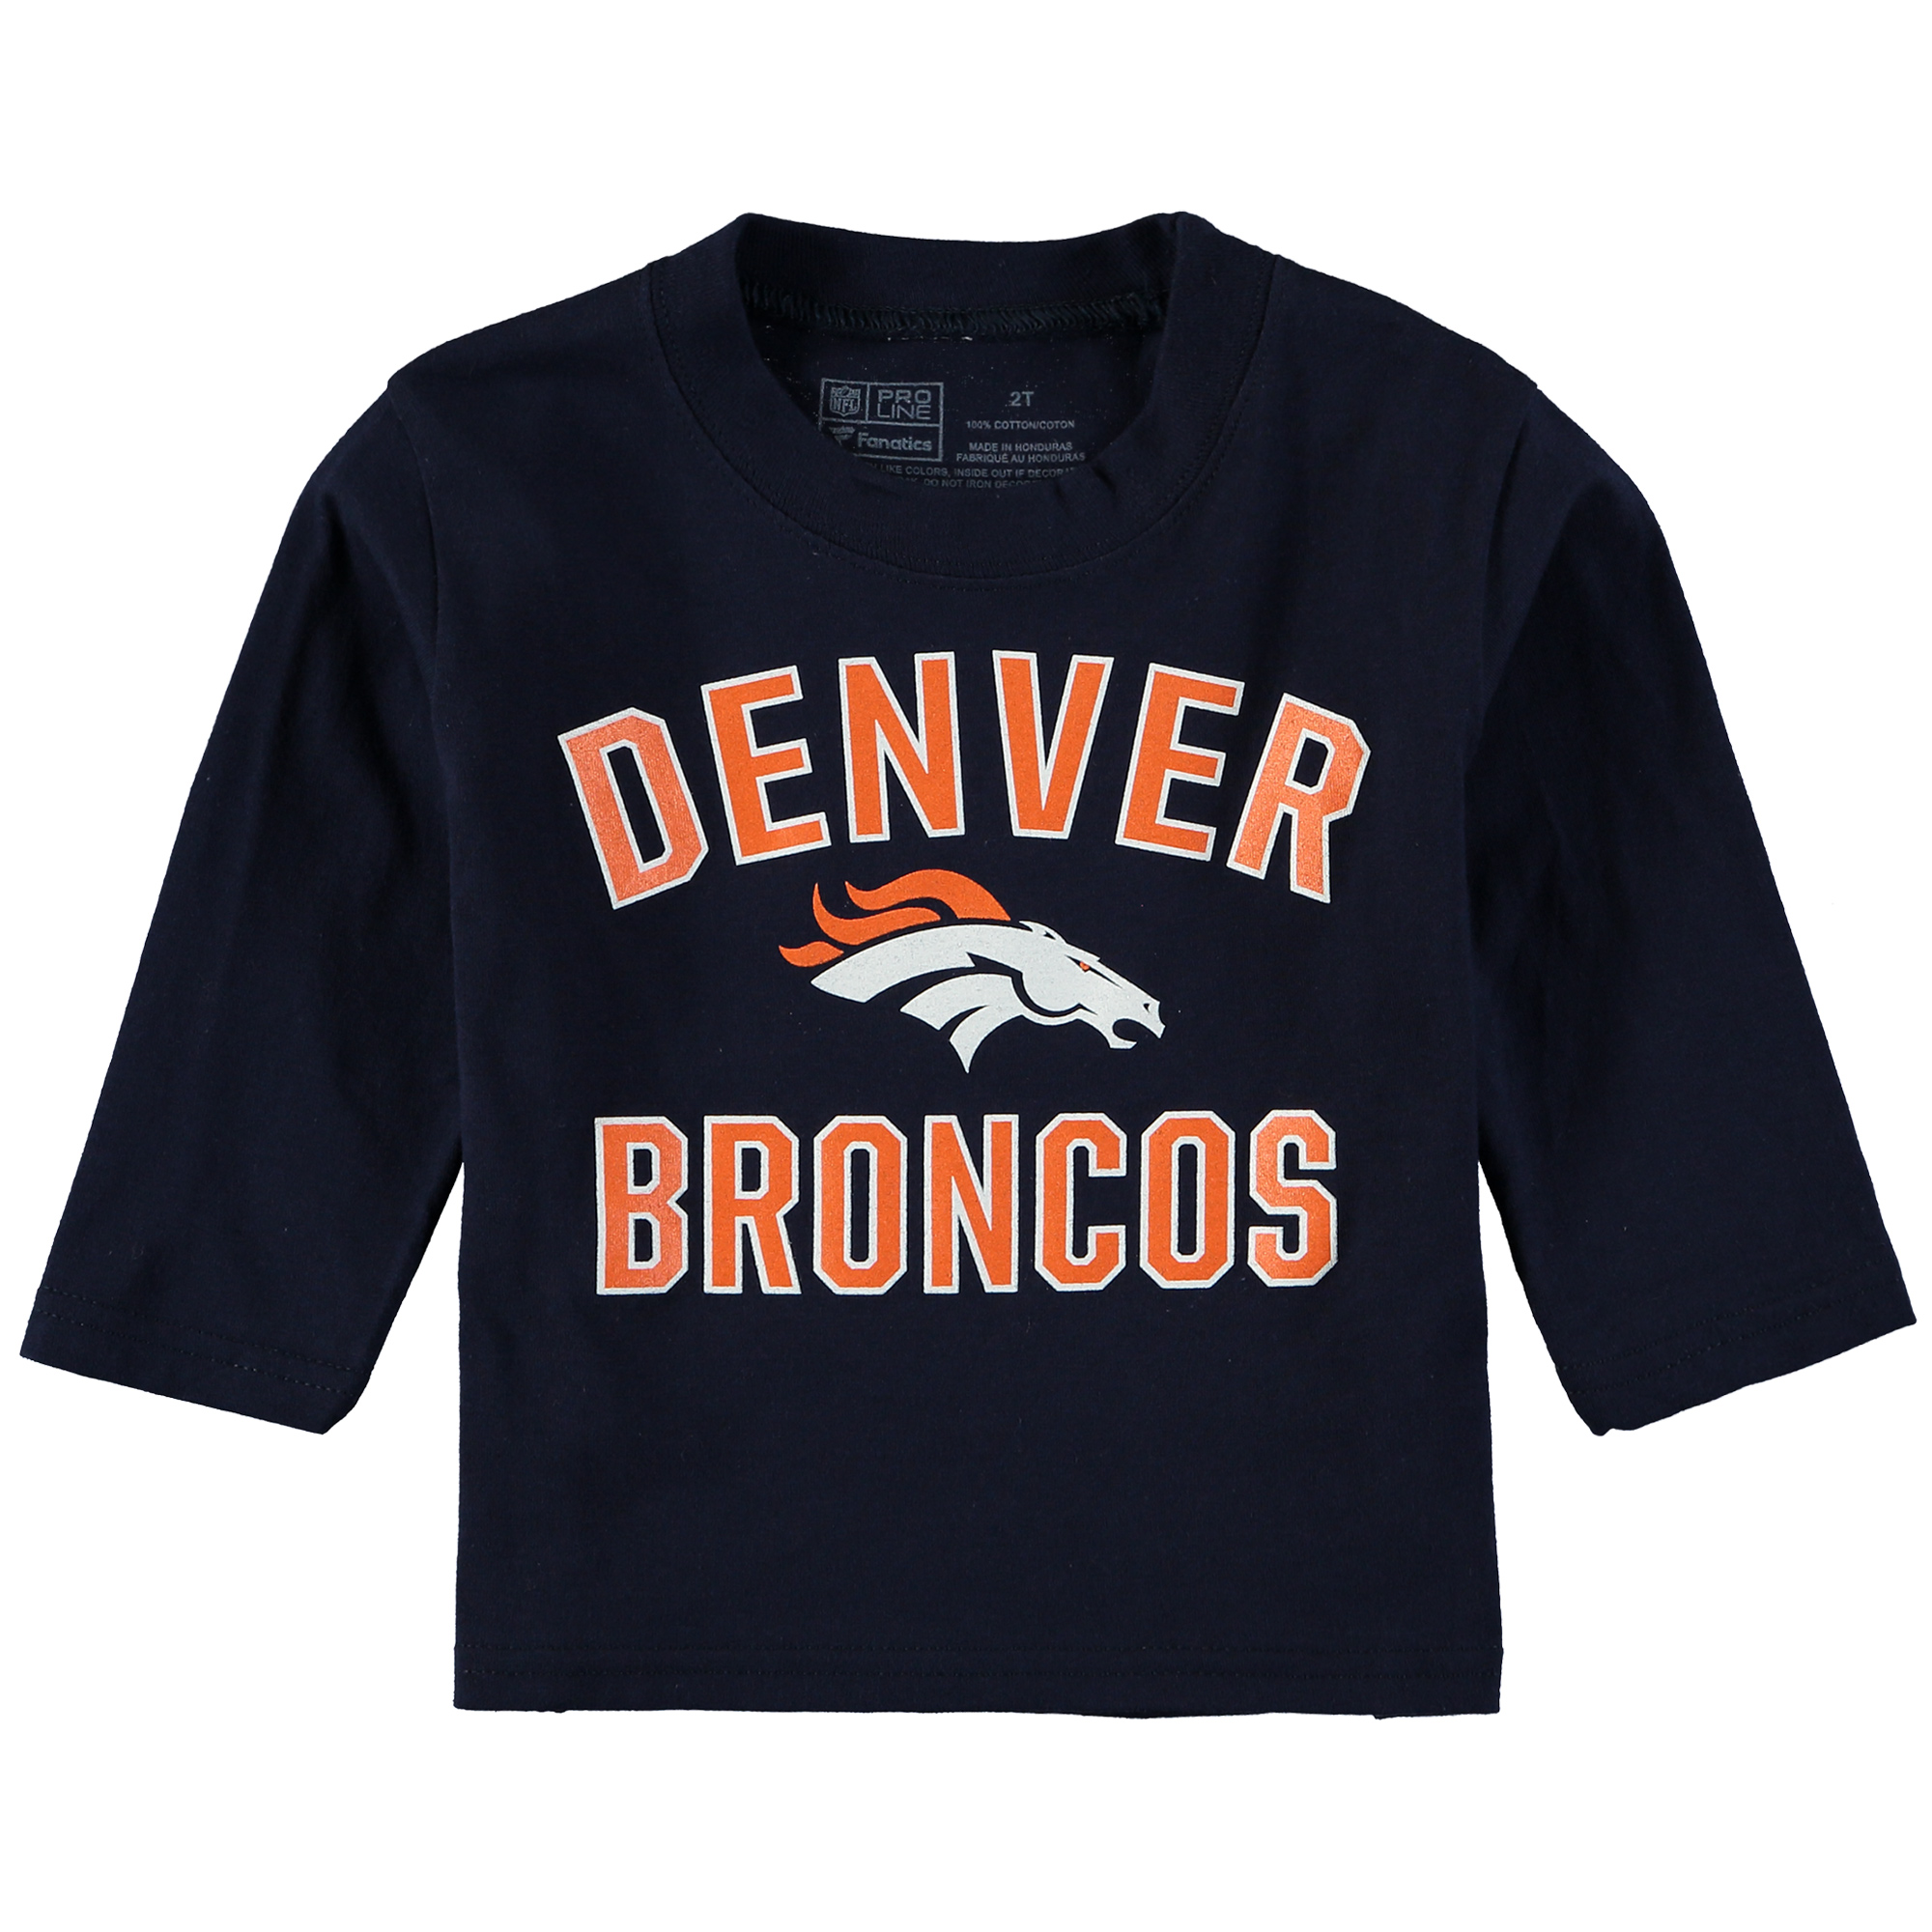 Denver Broncos NFL Pro Line by Fanatics Branded Toddler Victory Arch Long Sleeve T-Shirt - Navy